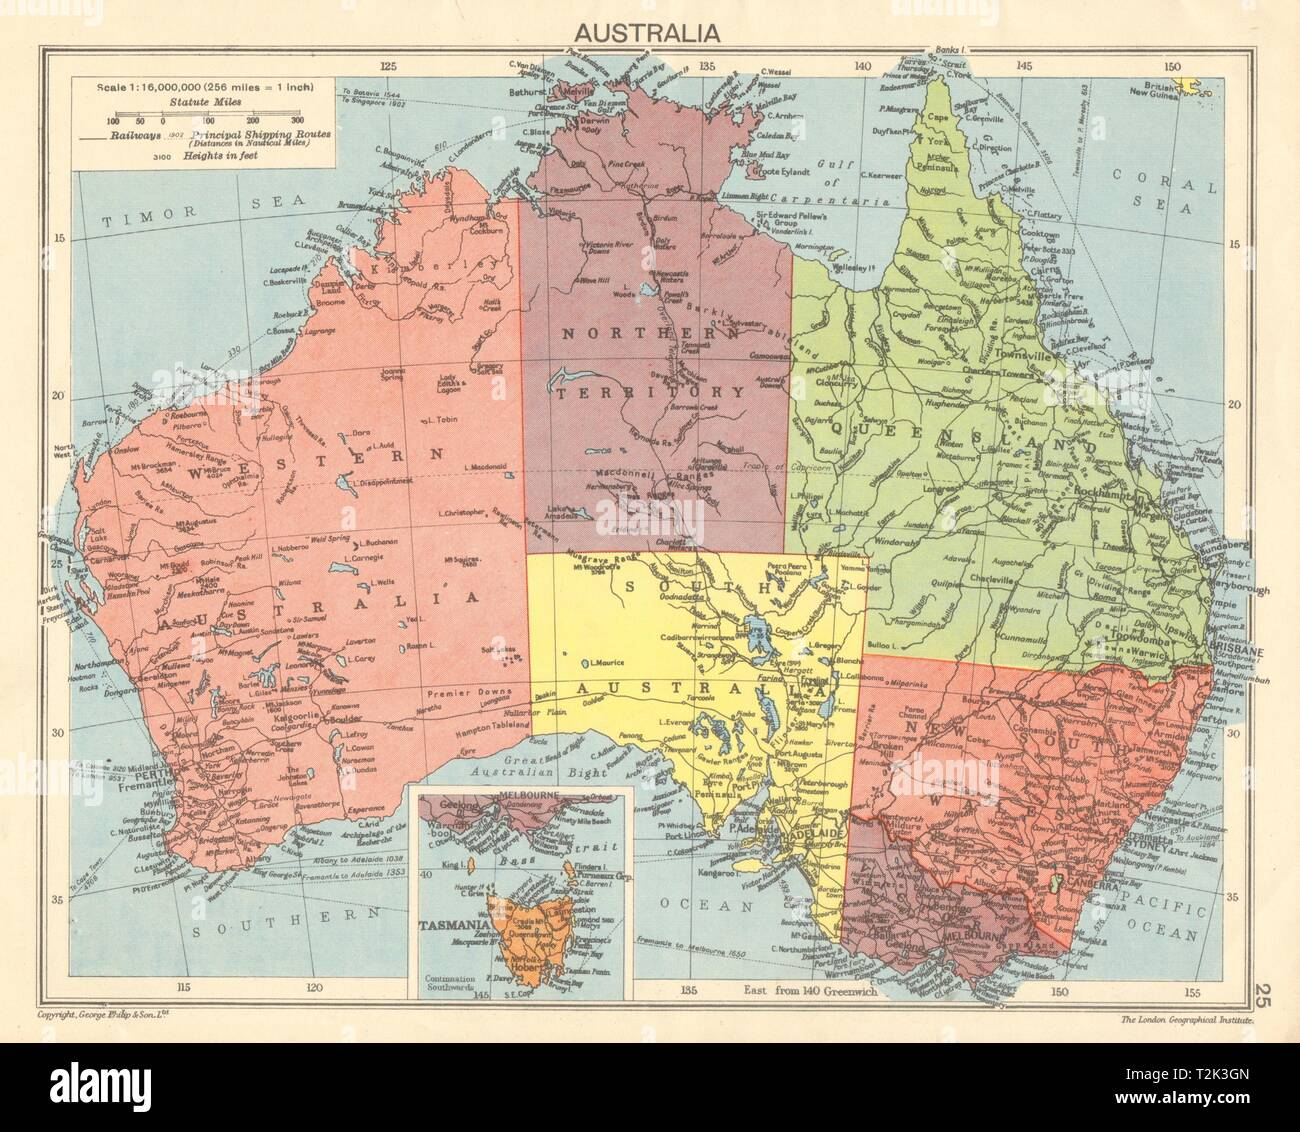 Map Of Australia States And Territories.Second World War Australia States Territories 1942 Old Vintage Map